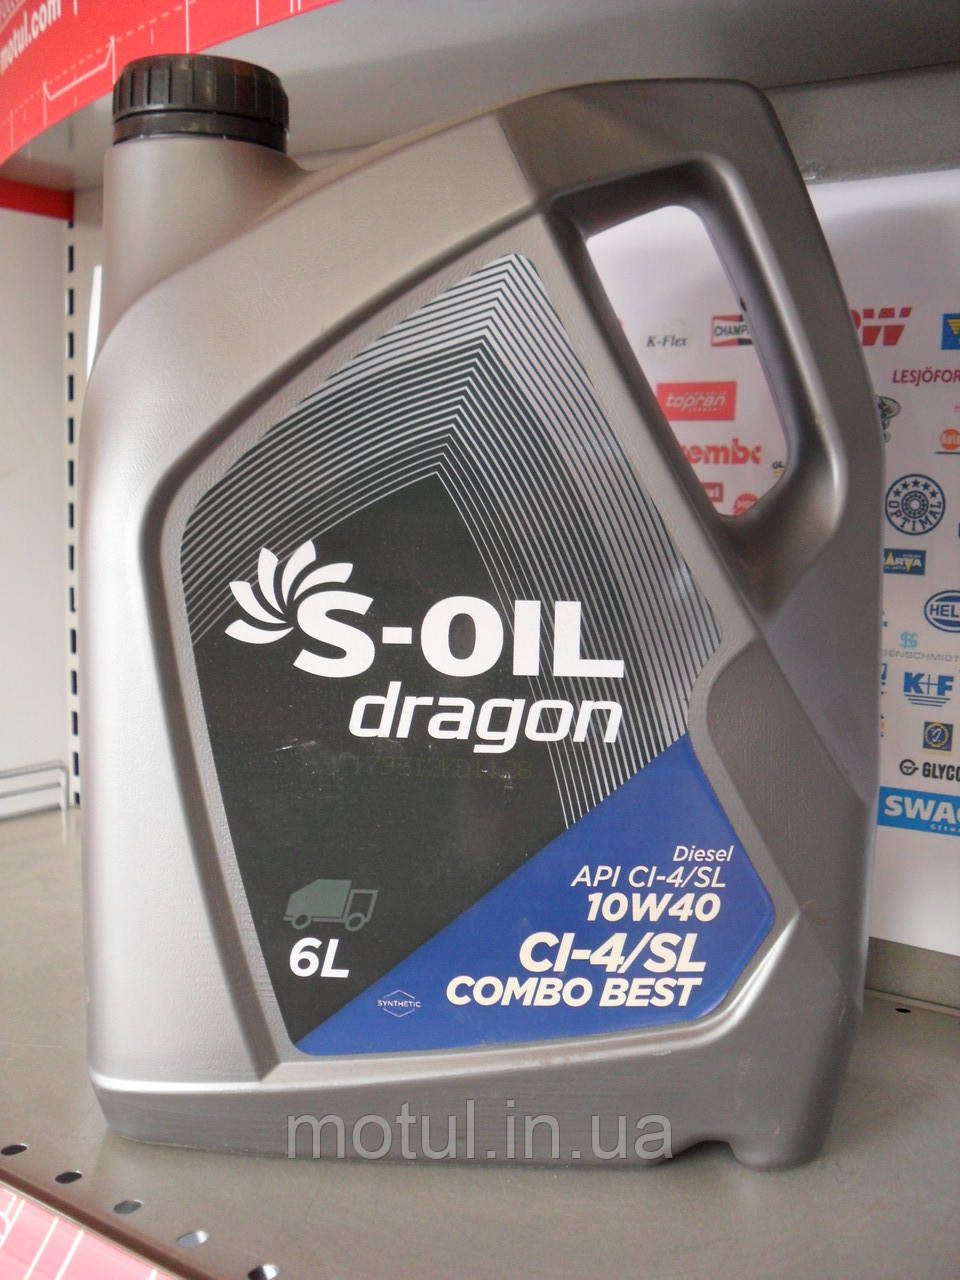 Моторне масло S-oil dragon combo best 10w40